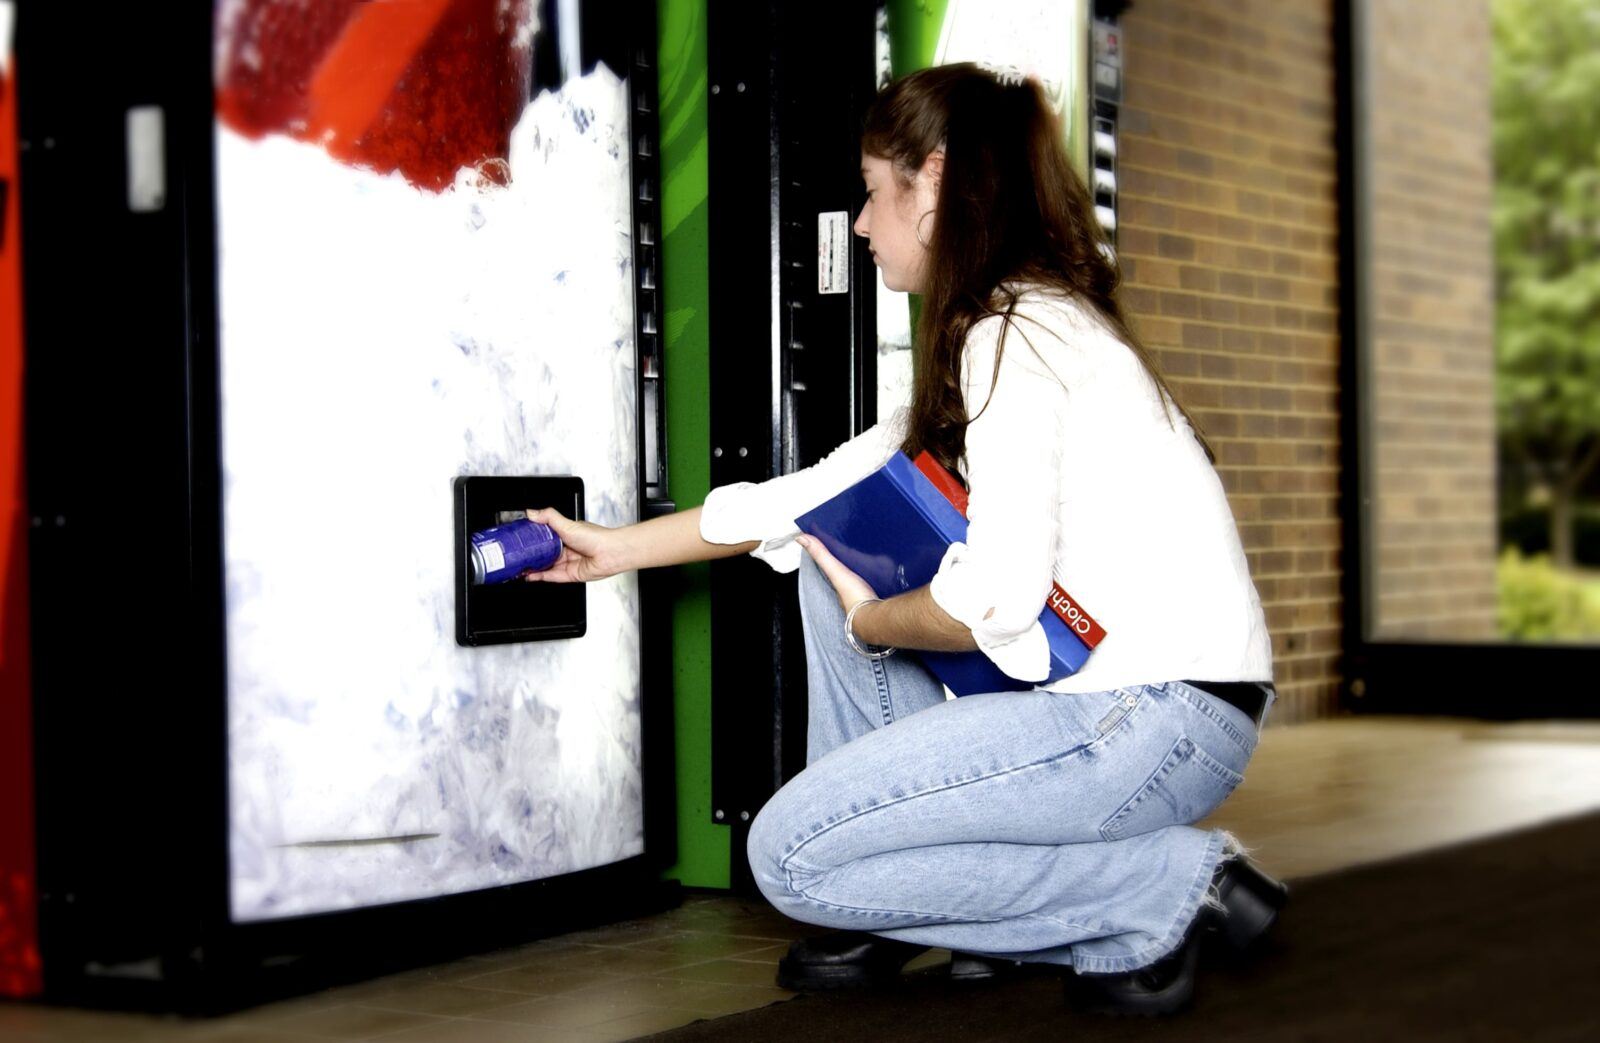 girl reaching into vending machine and holding books in the other hand